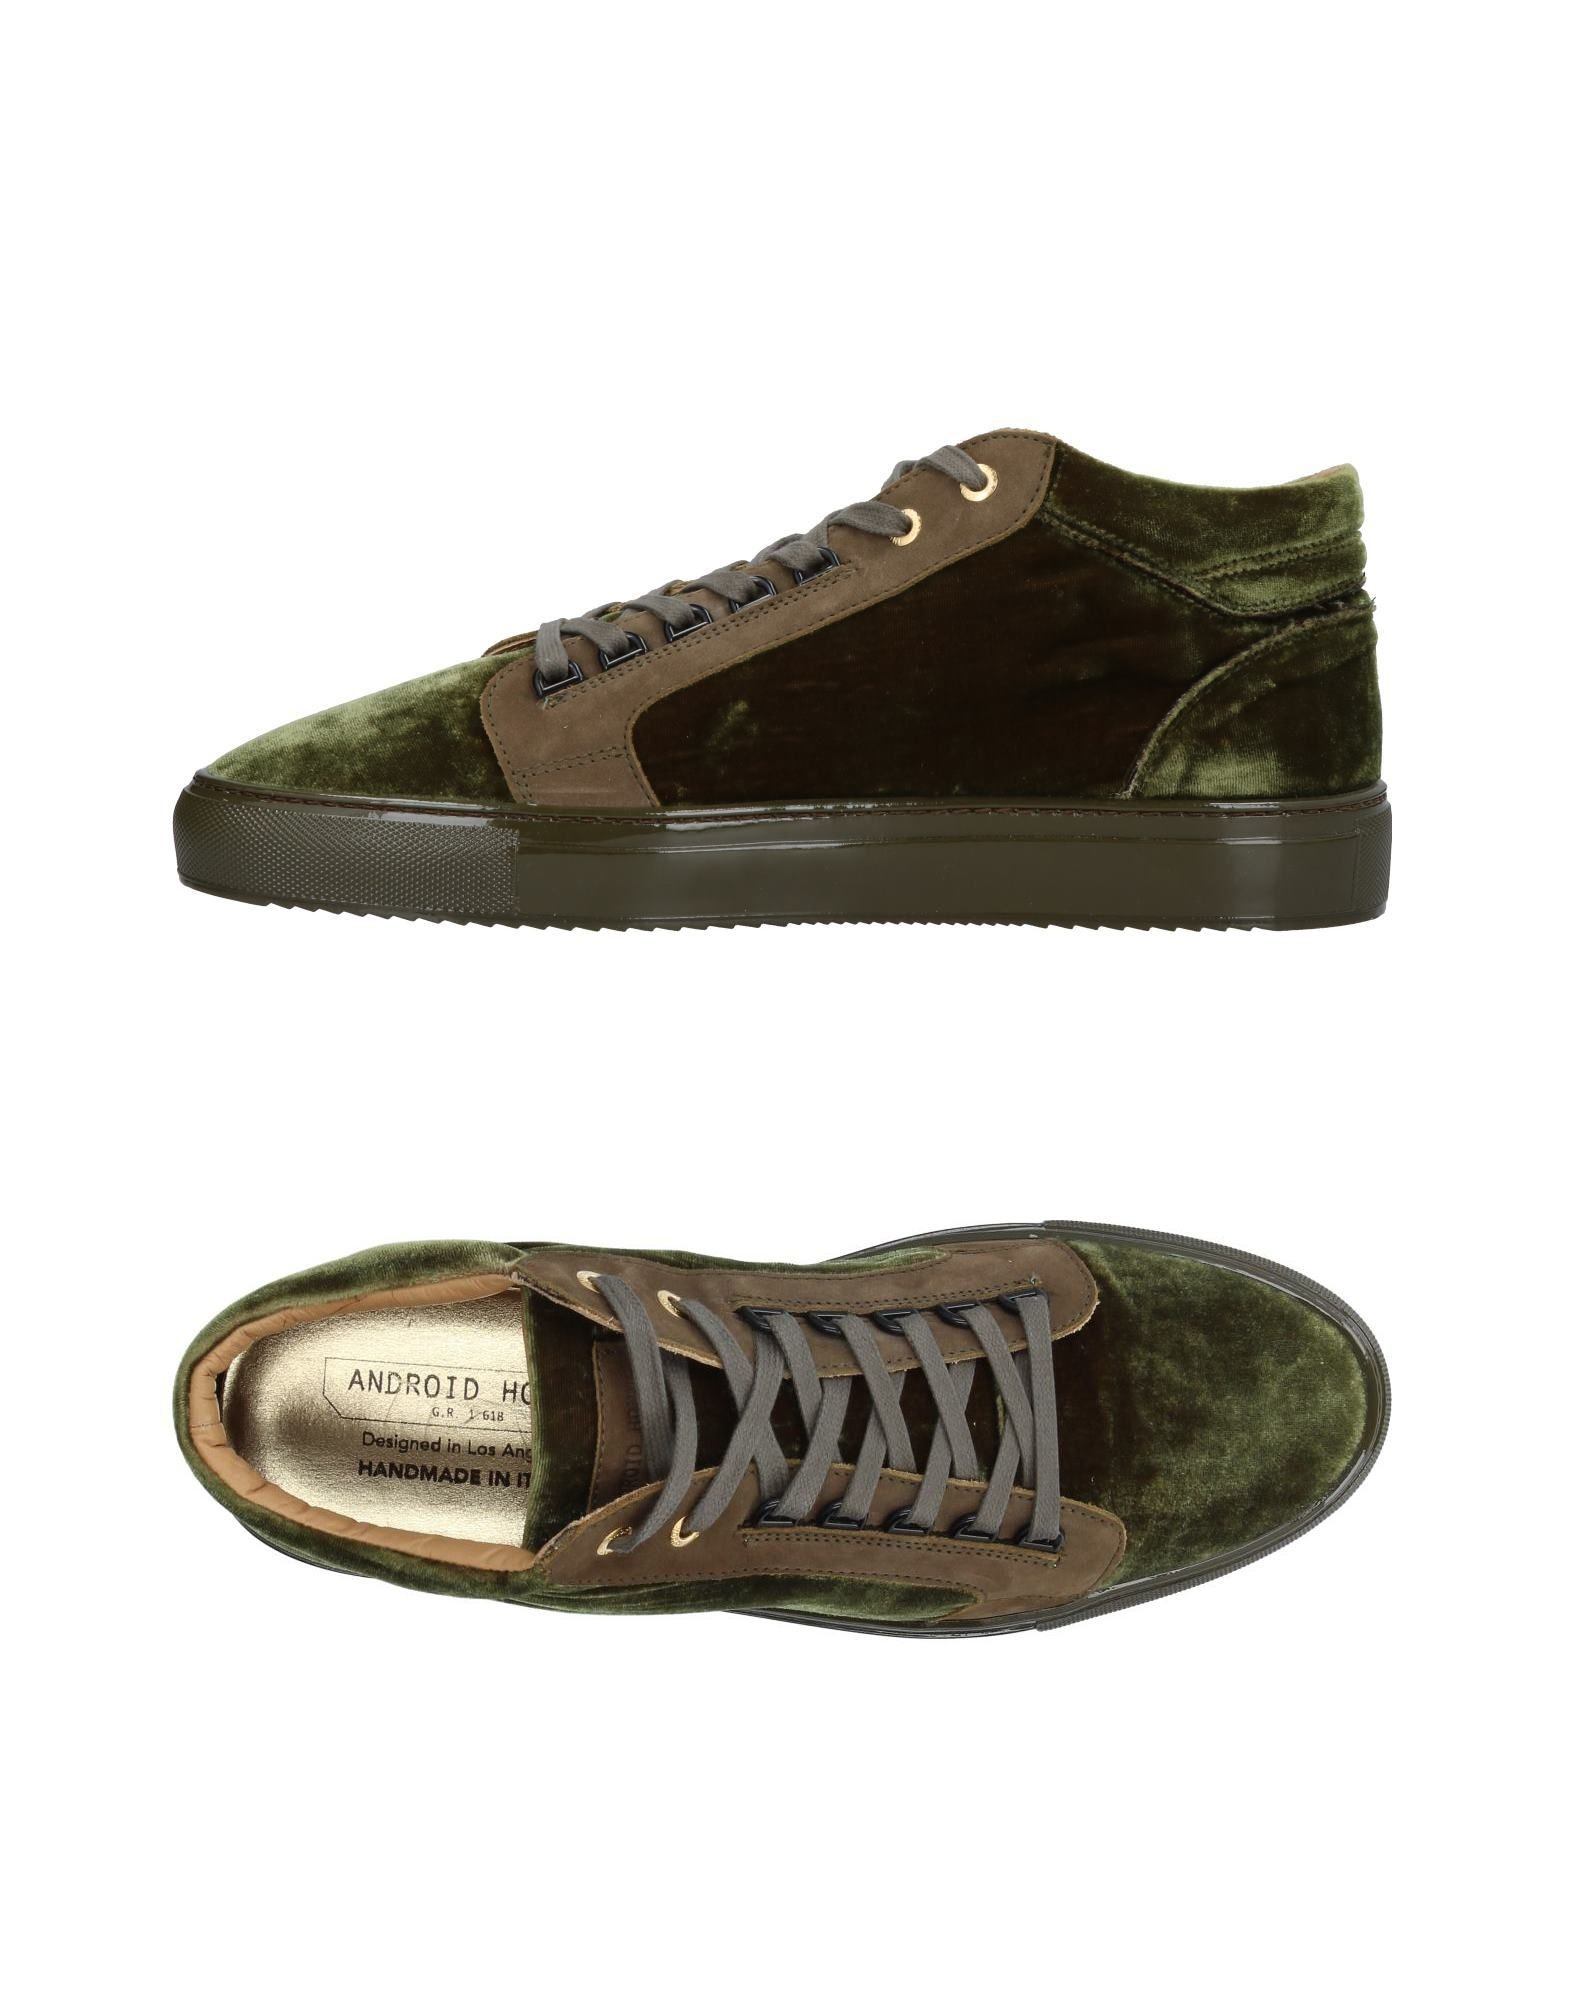 Android Homme Sneakers Schuhe Herren  11248044EH Neue Schuhe Sneakers bc331a